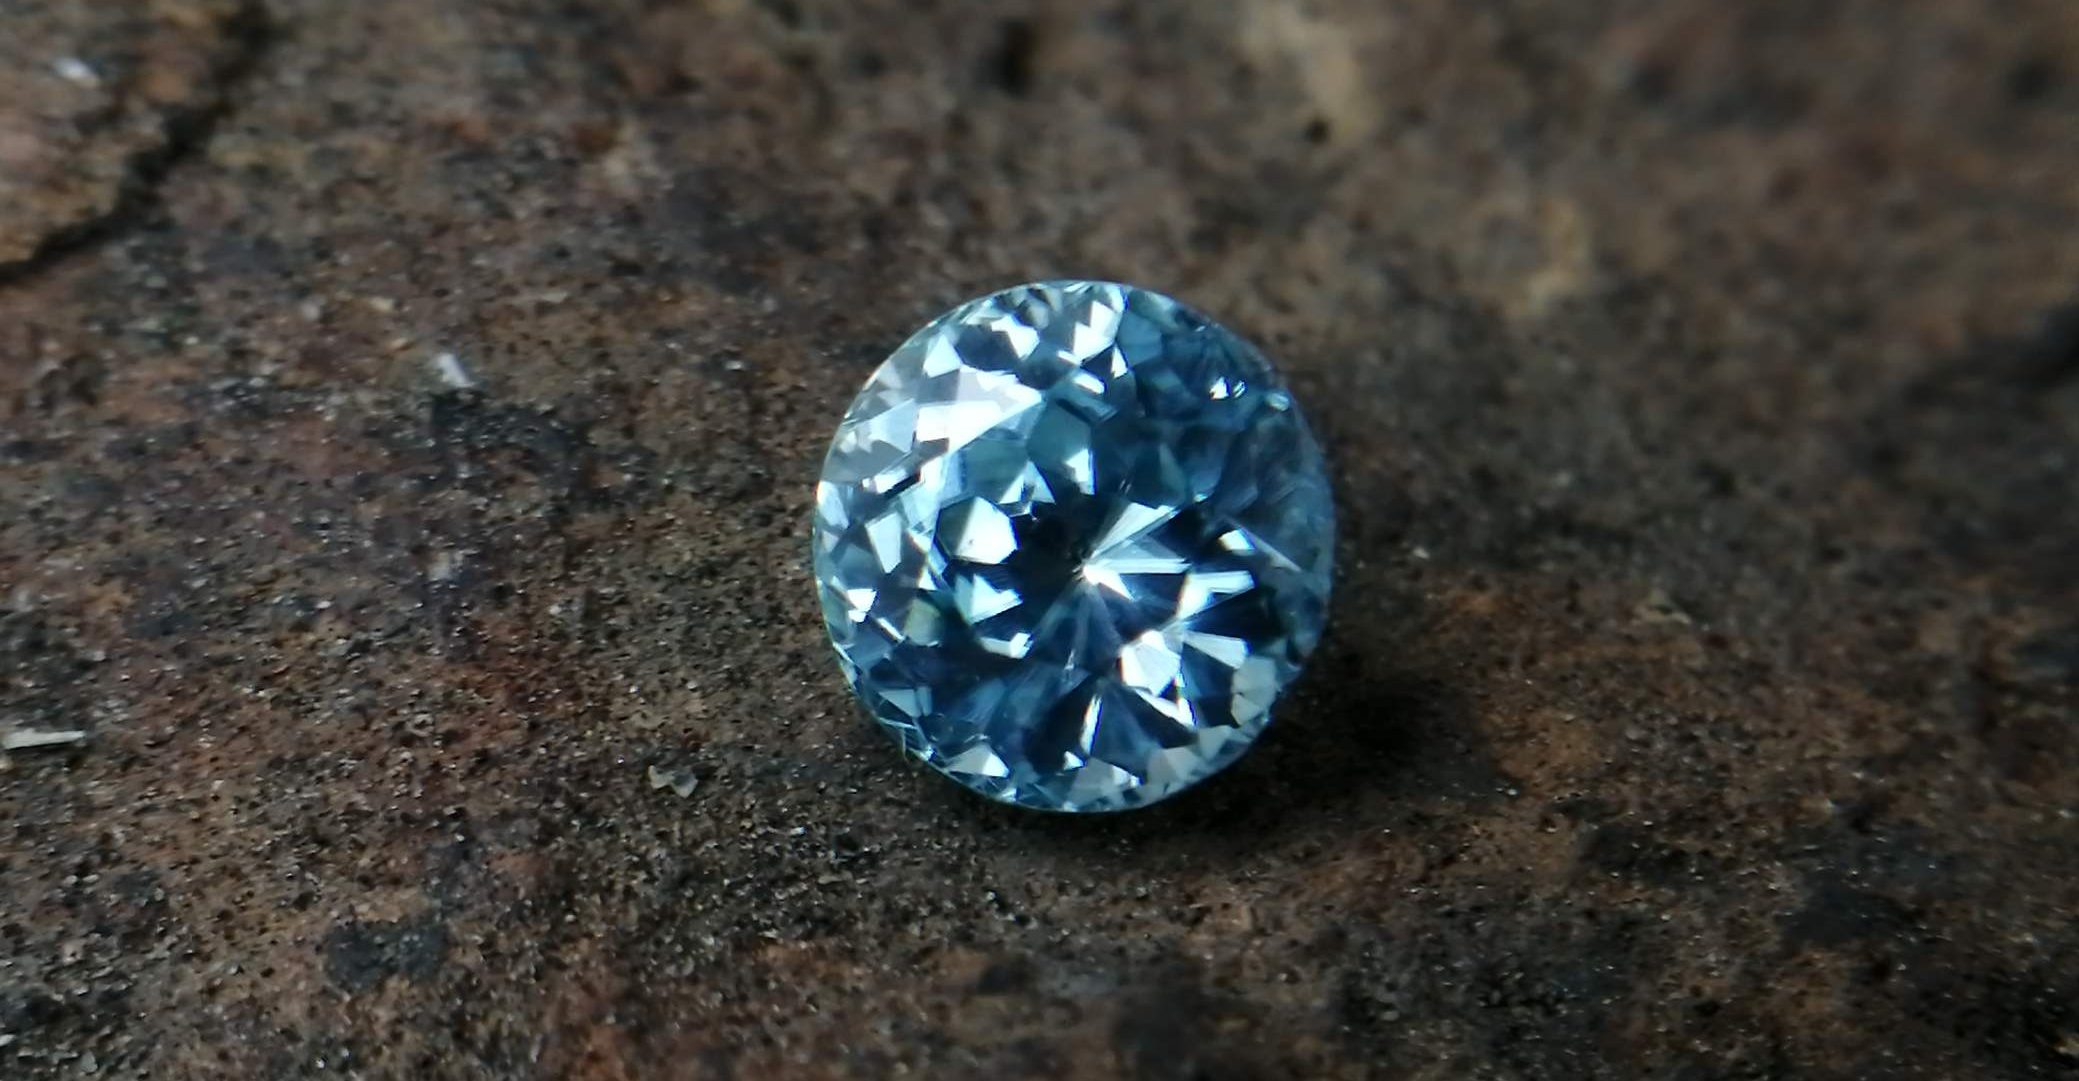 """Colour: Light Green-Blue Shape: Round Weight : 2.31 Cts Dimension : 6.9 x 6.8 x 5.3 mm Locality: Cambodia Treatment: No identification of heat treatment on the Lab Report. but, Blue Zircon is Heated Clarity : VS • CSL - Colored Stone Laboratory Certified ( GIA Alumina Association Member ) • CSL Memo No: 82E5EB04FC43 Blue Zircon Stimulates Throat Chakra. It is a very popular gemstone in the new fashion world for brilliance pieces of jewelry. Zircon is a nesosilicates group mineral. Its corresponding chemical formula is ZrSiO4. The name derives from the Persian zargun, meaning """"gold-hued"""". Zircon is a popular gemstone that has been used for nearly 2000 years. The crystal structure of zircon is a tetragonal crystal mineral with 7.5 hardness according to the Mohs Hardness scale. Zircon is also very resistant to heat and corrosion and known as Insoluble gemstone. This Uniaxial (+) mineral Specific gravity is 4.6–4.7. It's heavy more than such as Sapphire, chrysoberyl, Garnets, spinels. Gem Businessmen use these physical properties to identify zircons from other gemstones. Zircon has weak pleochroism and has colors such as Colorless, Very Strong Blue To Green-Blue, Yellow, Blue-Green, Yellowish Green, Yellow-Green, Brown, Orangy Yellow To Reddish Orange, Dark Brownish Red, Sometimes Purple, Gray To Bluish Gray, Brownish Gray. Colorless specimens that show gem quality are a popular substitute for diamond and are also known as """"Matara diamond"""". Zircon has been classified into three types called high zircon, intermediate zircon ( medium zircon ), and low zircon. Some Quality Type brown zircons can be transformed into colorless and blue zircons by heating to 800 to 1000 °C. There are Some using names for Zircon such as Hyacinth or jacinth: yellow-red, orange, red-brown to brown, Jargoon or jargon: light yellow to colorless stones, Beccarite: green zircon, Melichrysos: straw yellow, Starlite: blue heat treated zircon, Sparklite: colorless zircon. Zircon is found in Madagascar,"""